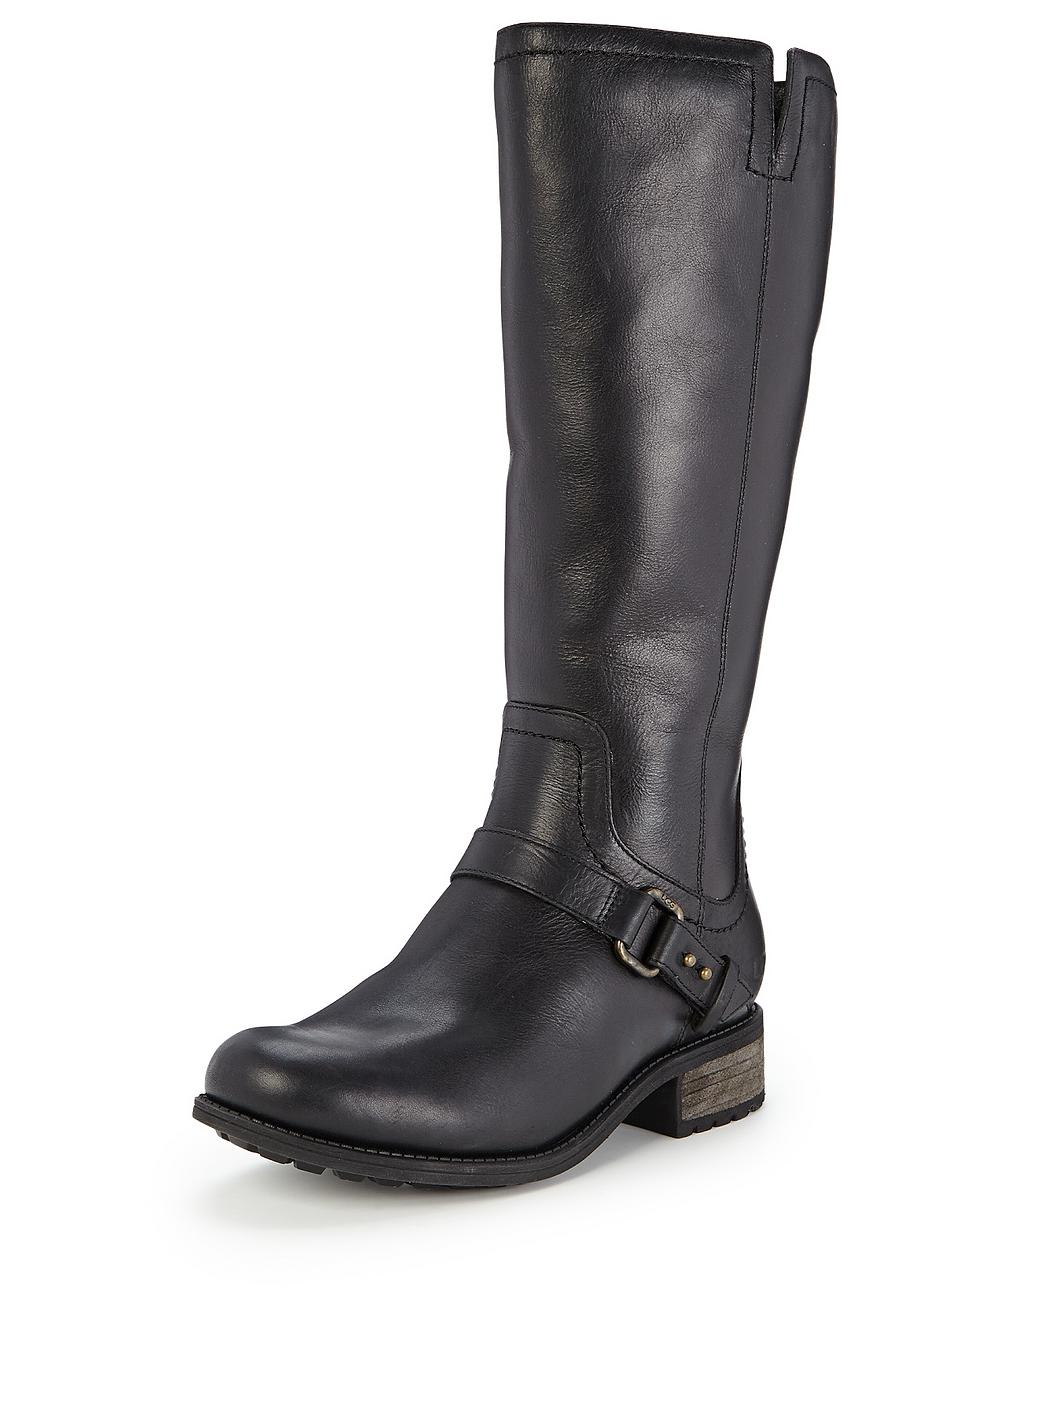 87ca581d367 Ugg Black Leather Riding Boot - cheap watches mgc-gas.com